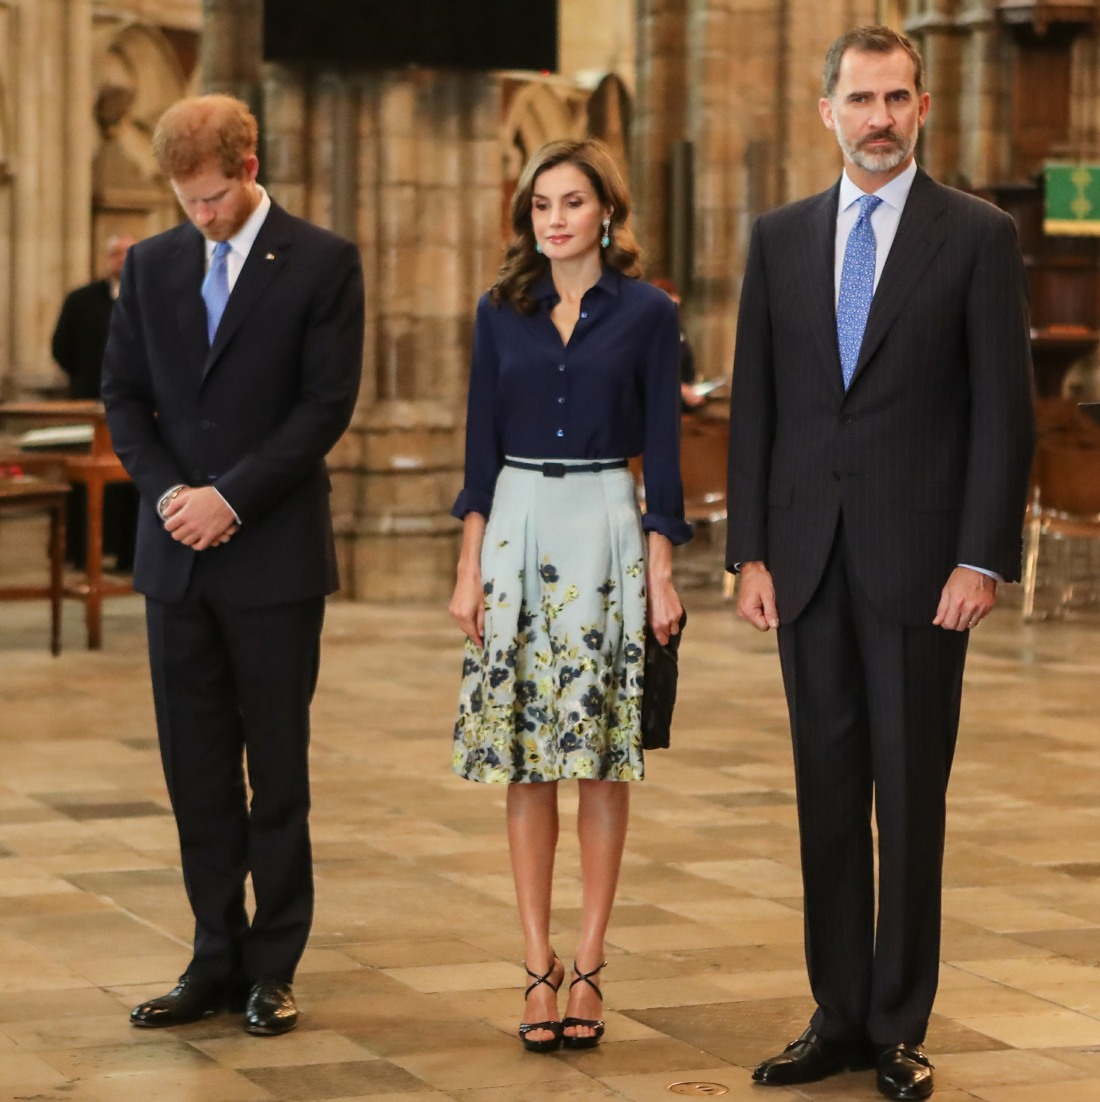 King Felipe and Queen Letizia of Spain visit Westminster Abbey, accompanied by Prince Harry